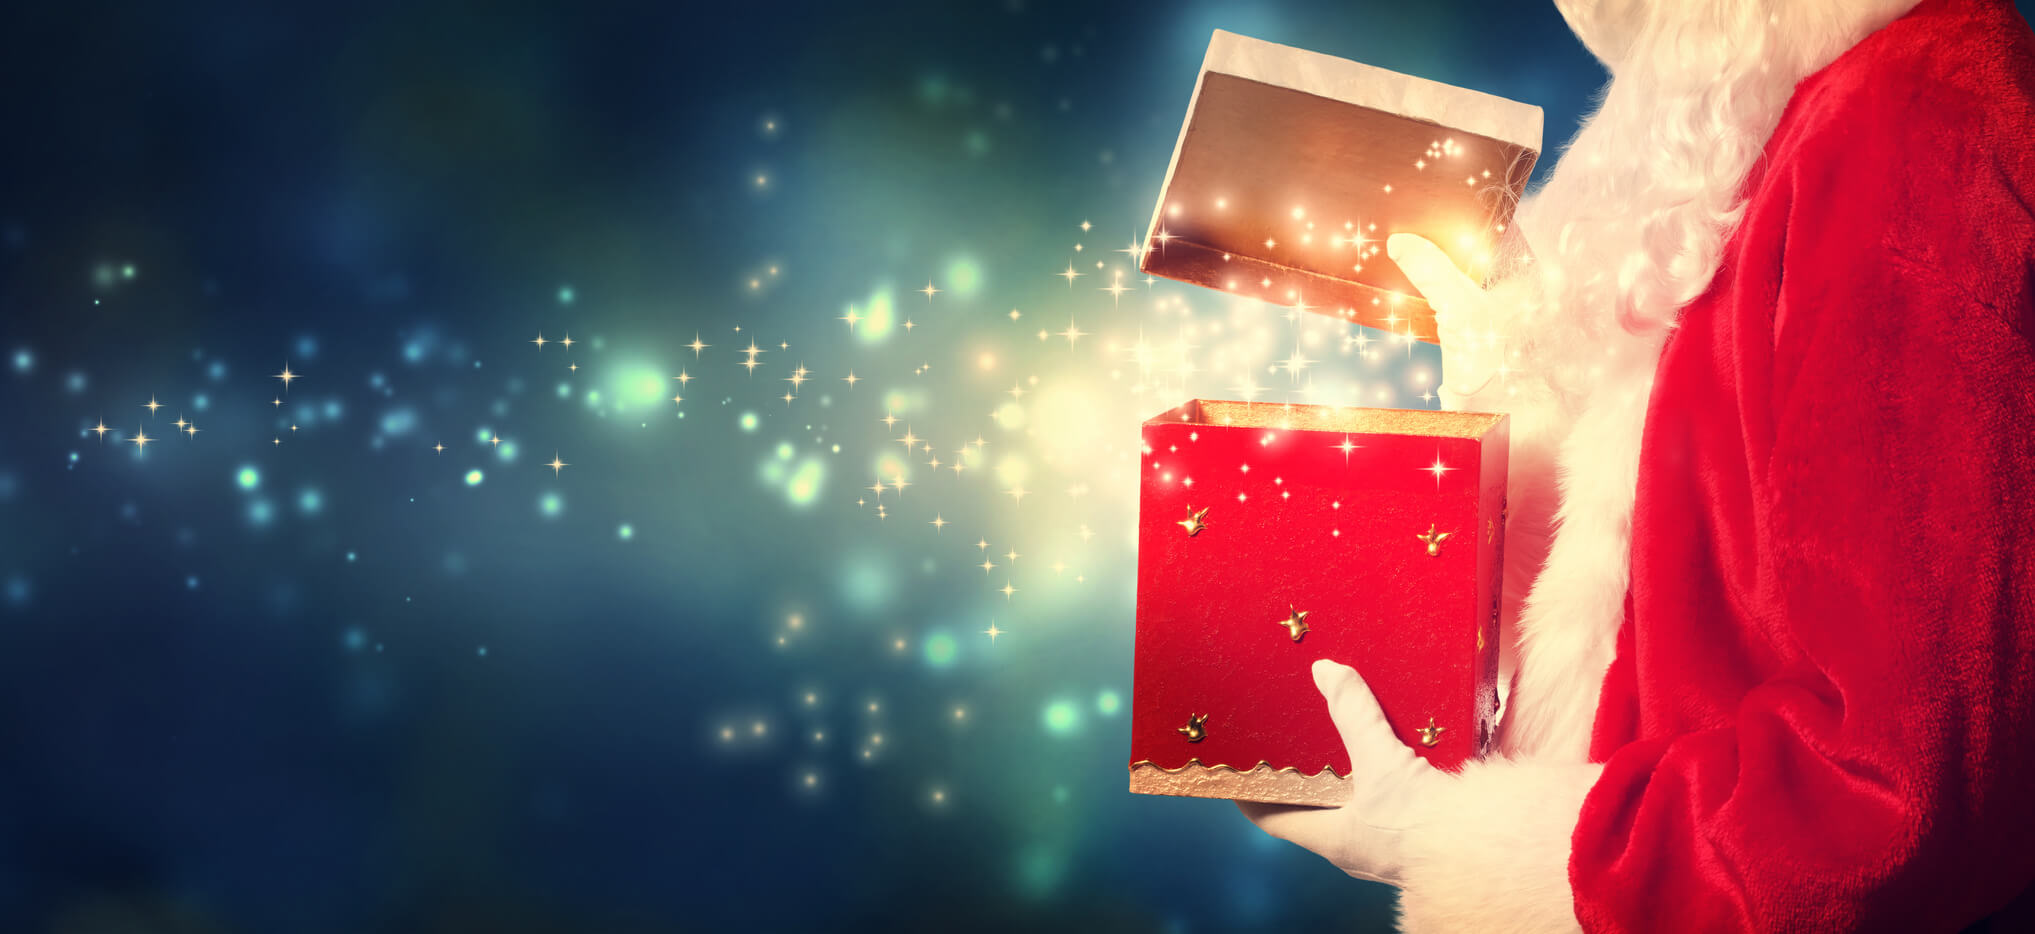 5 Ways to Kill It This Christmas with Facebook Ads - ArrowShade